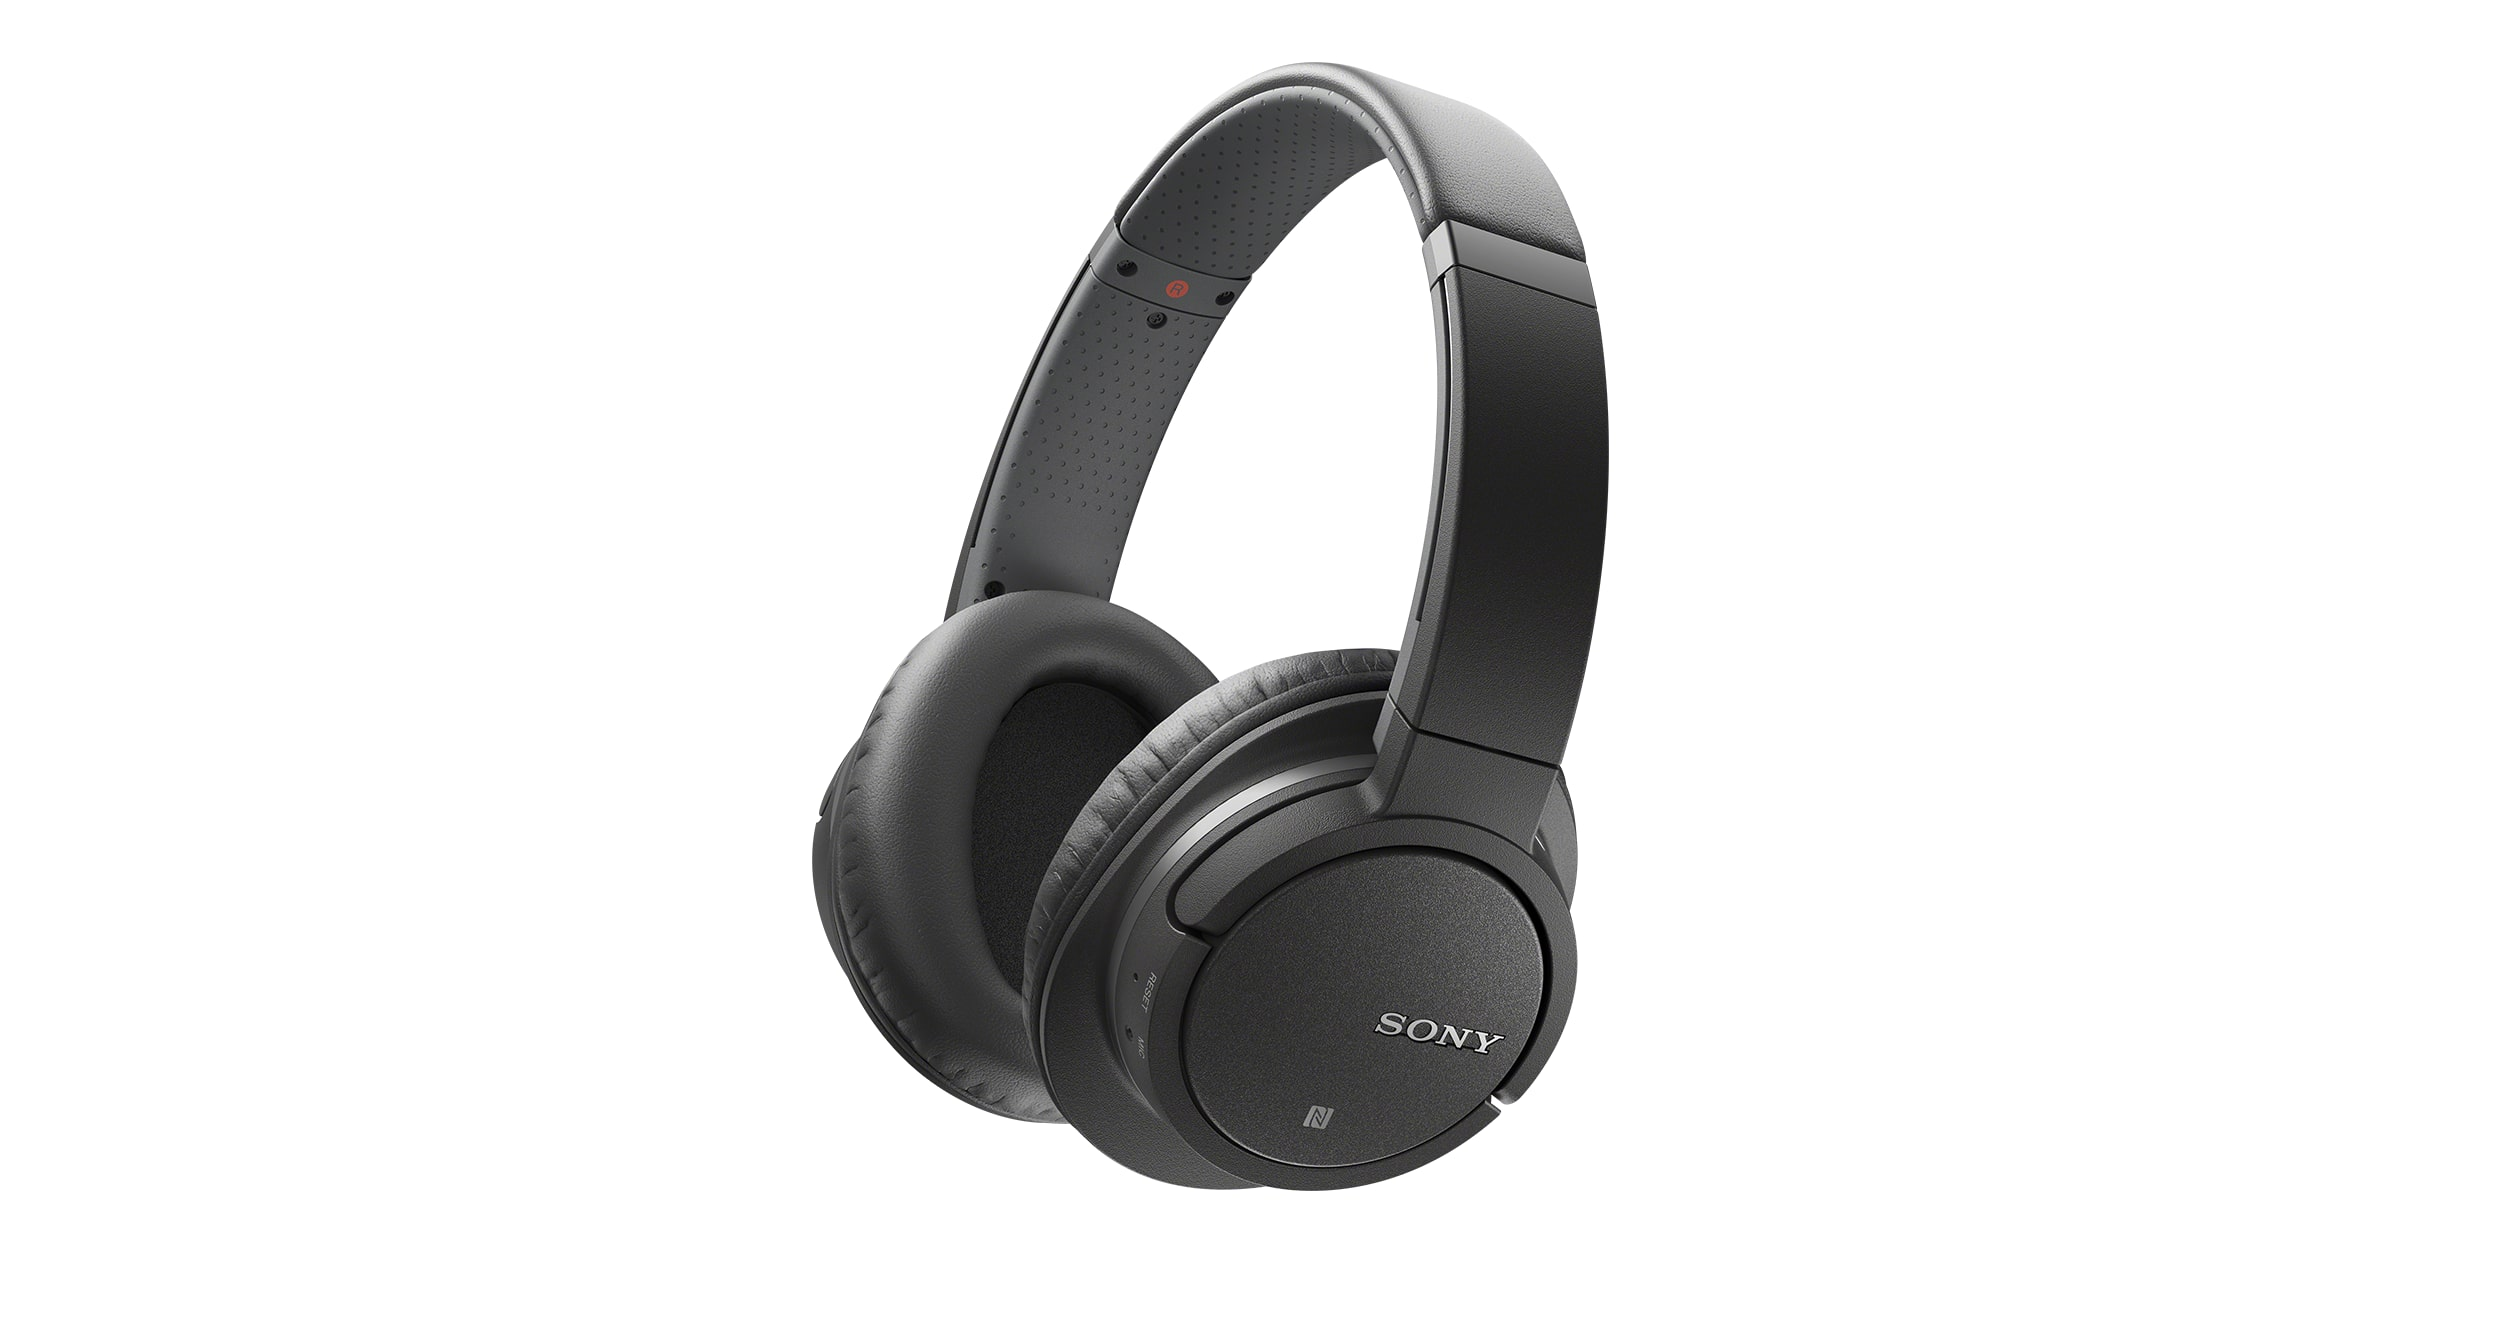 Zx770bt Bluetooth Headphones Mdr Sony Us Home Images Headset Wiring Facebook Twitter Google